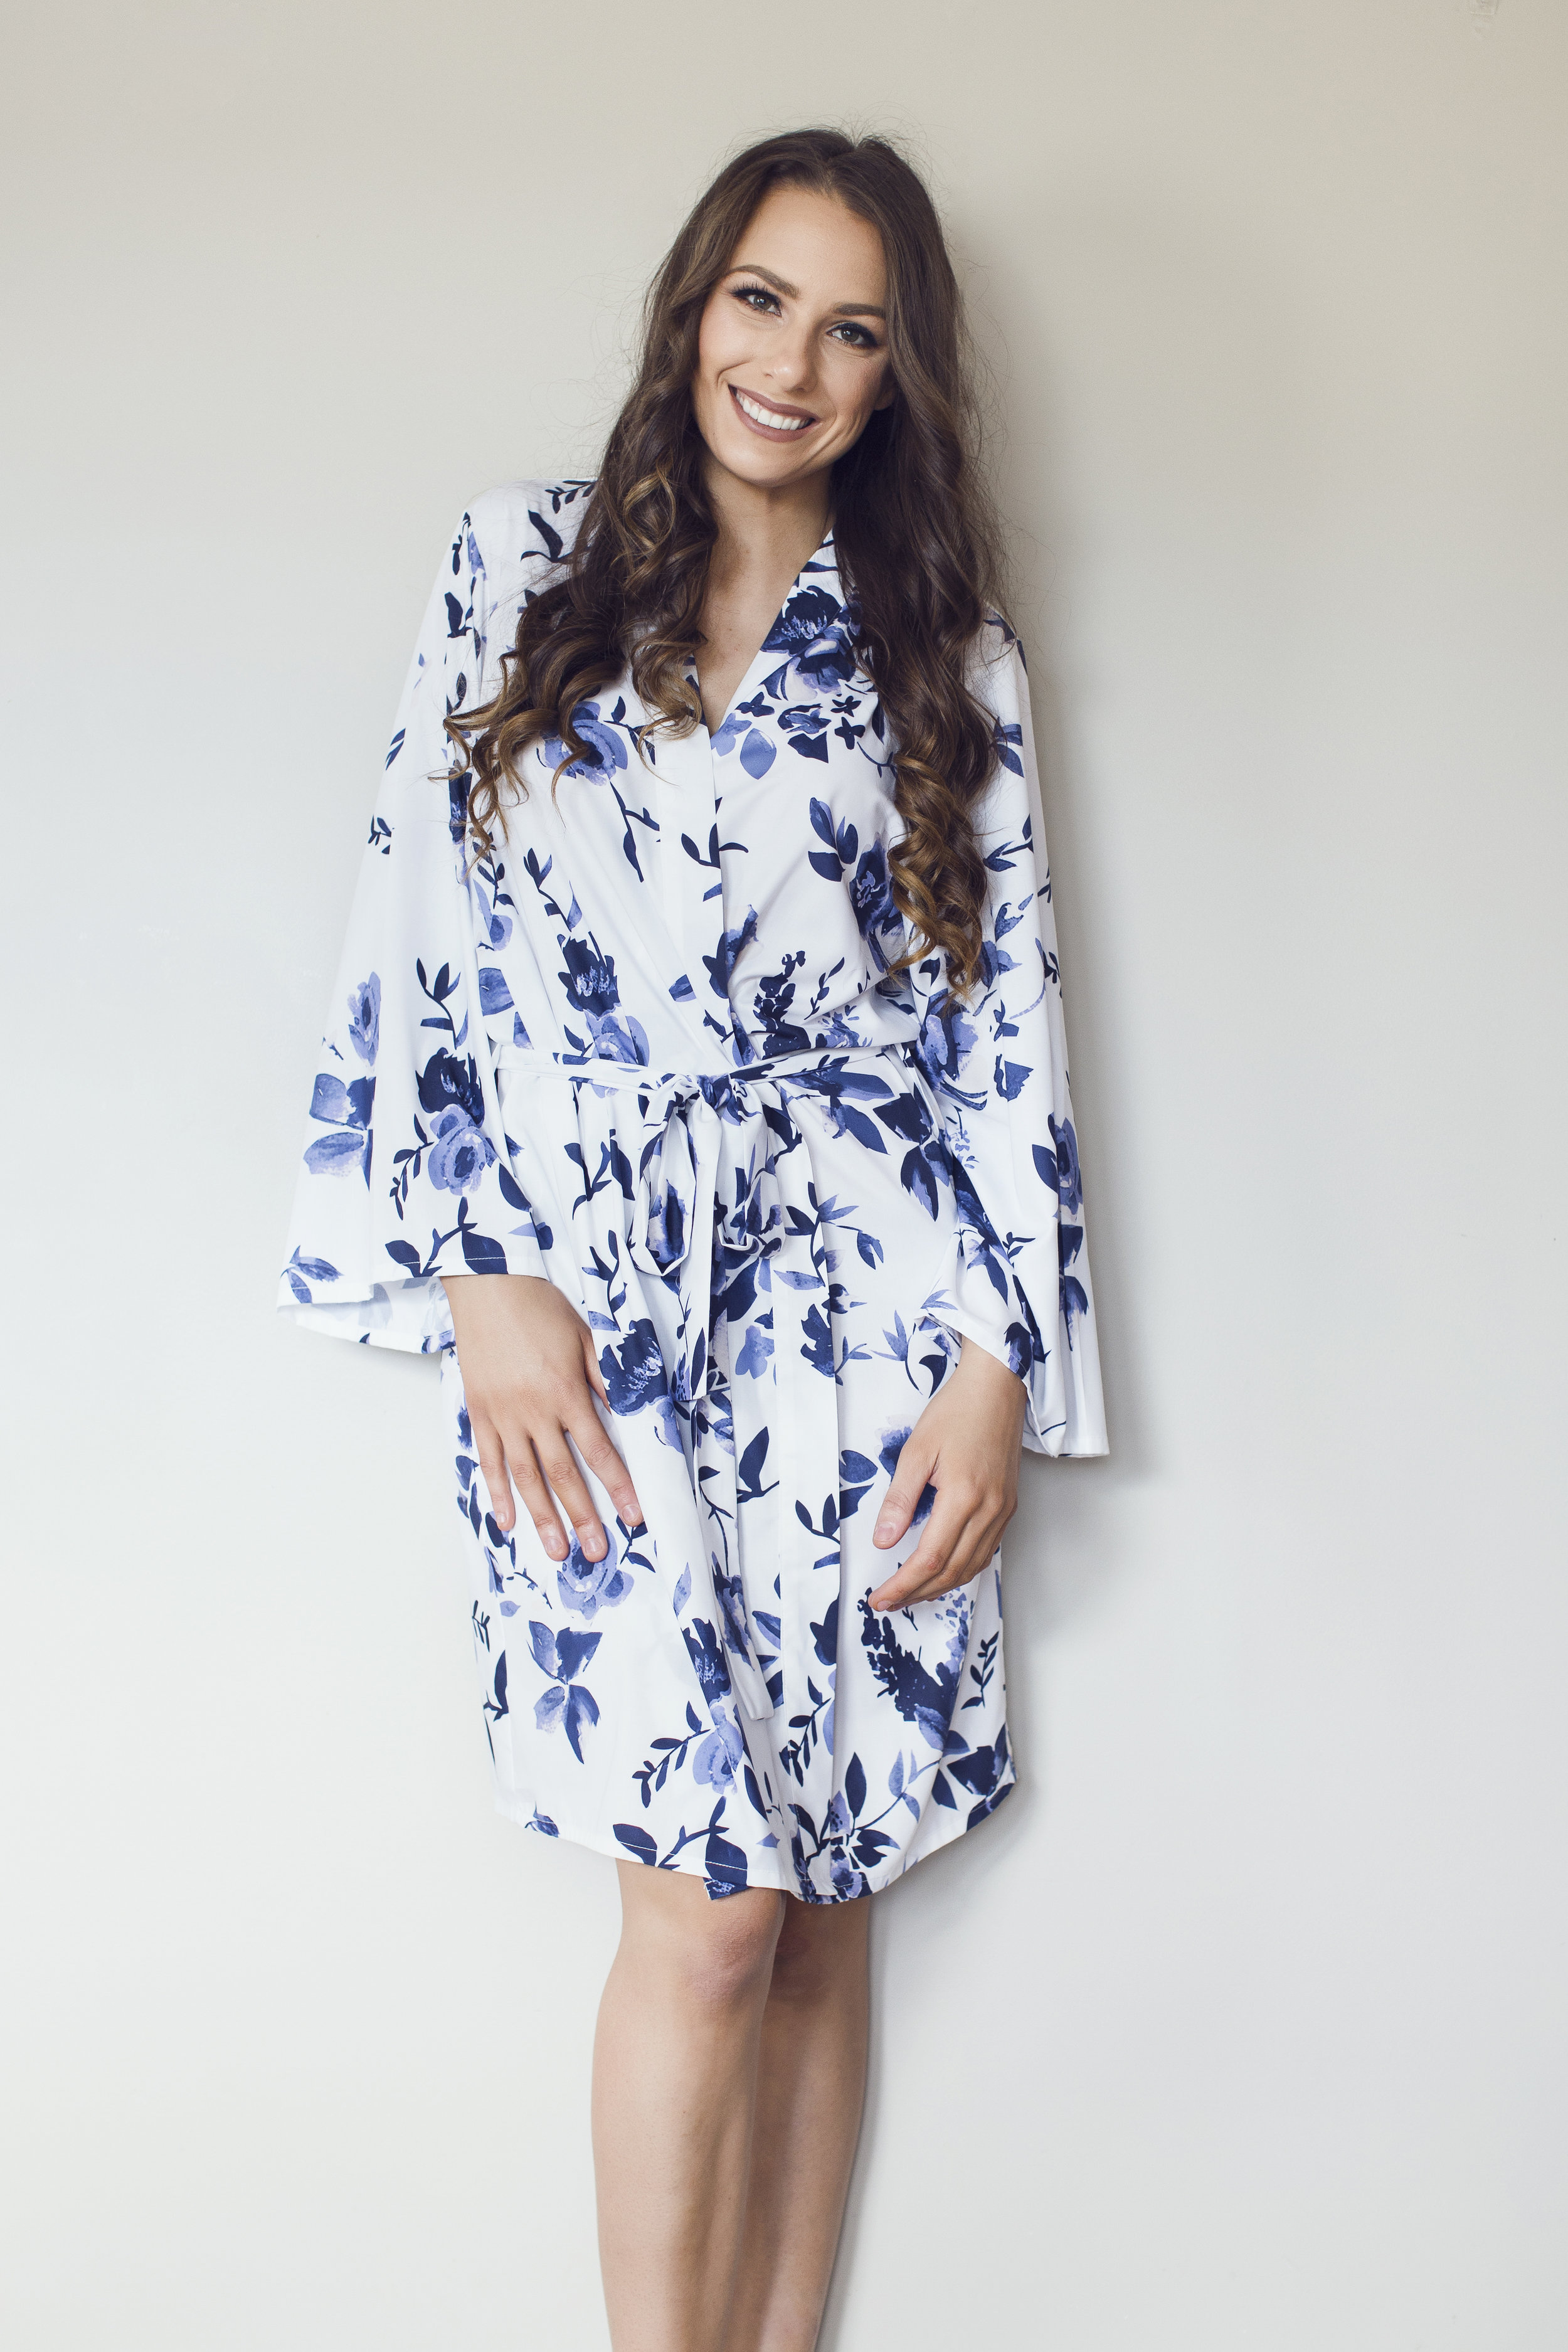 Floral bridesmaid robes NZ